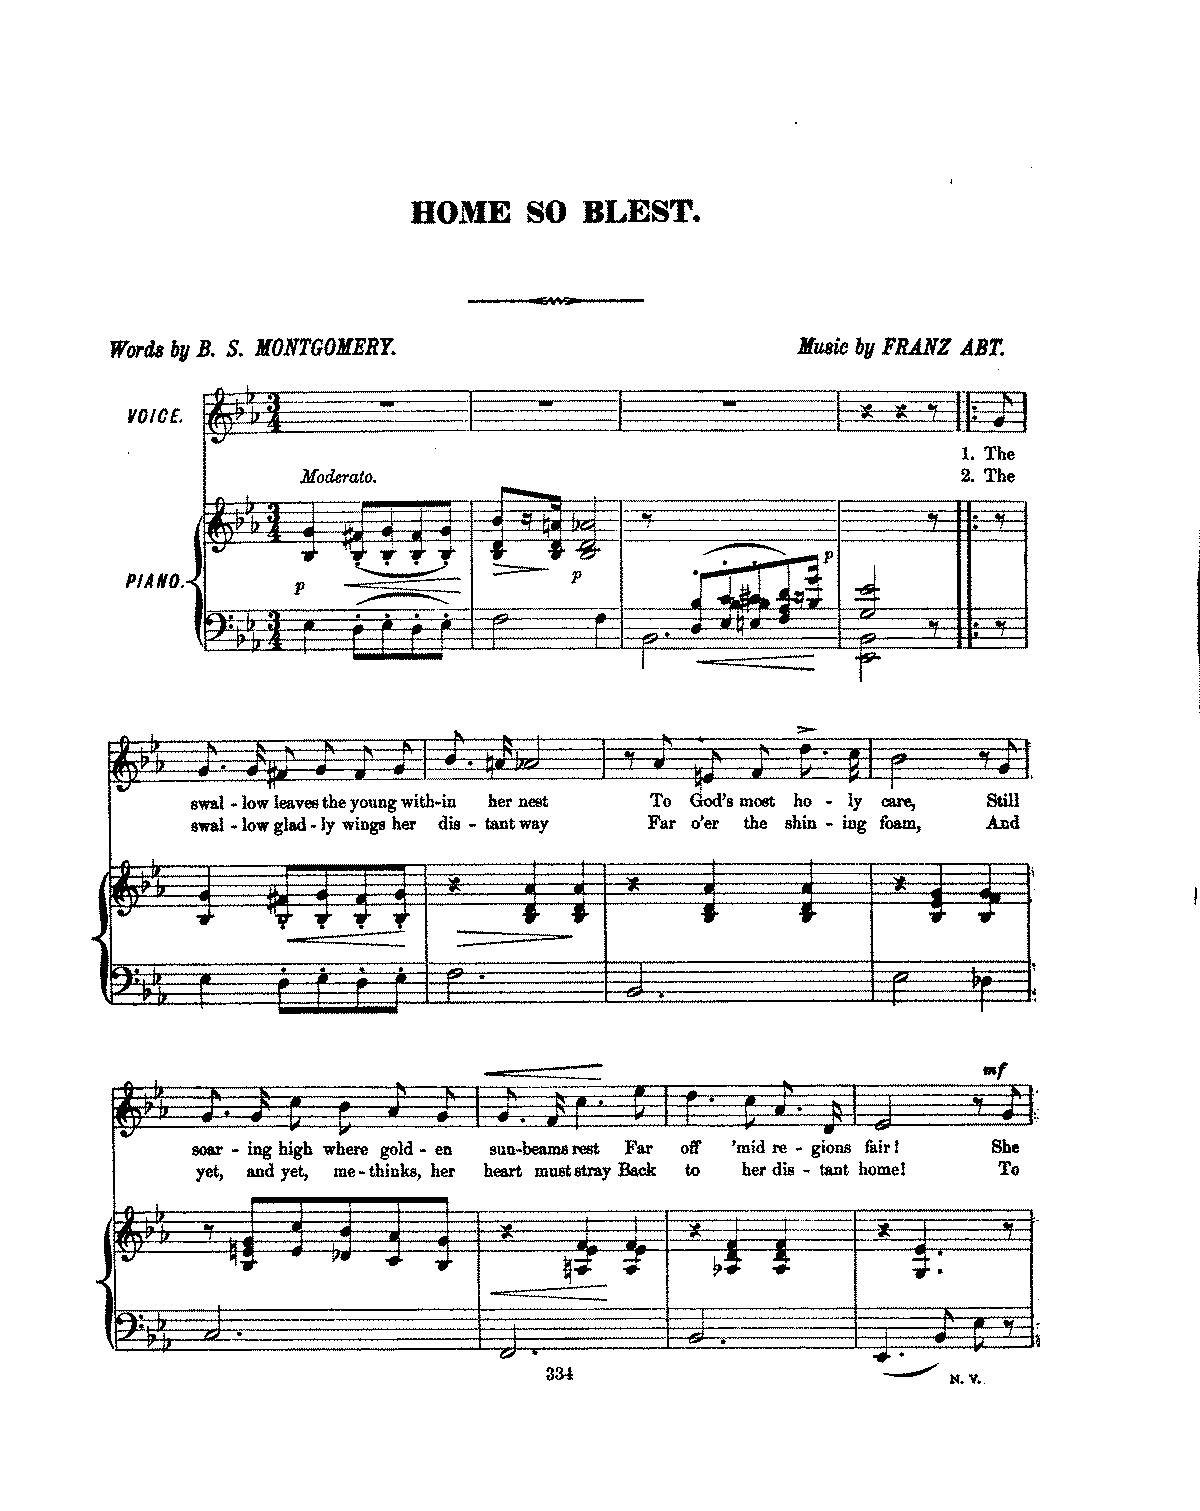 PMLP295881-Abt Home so blest (The century of song).pdf